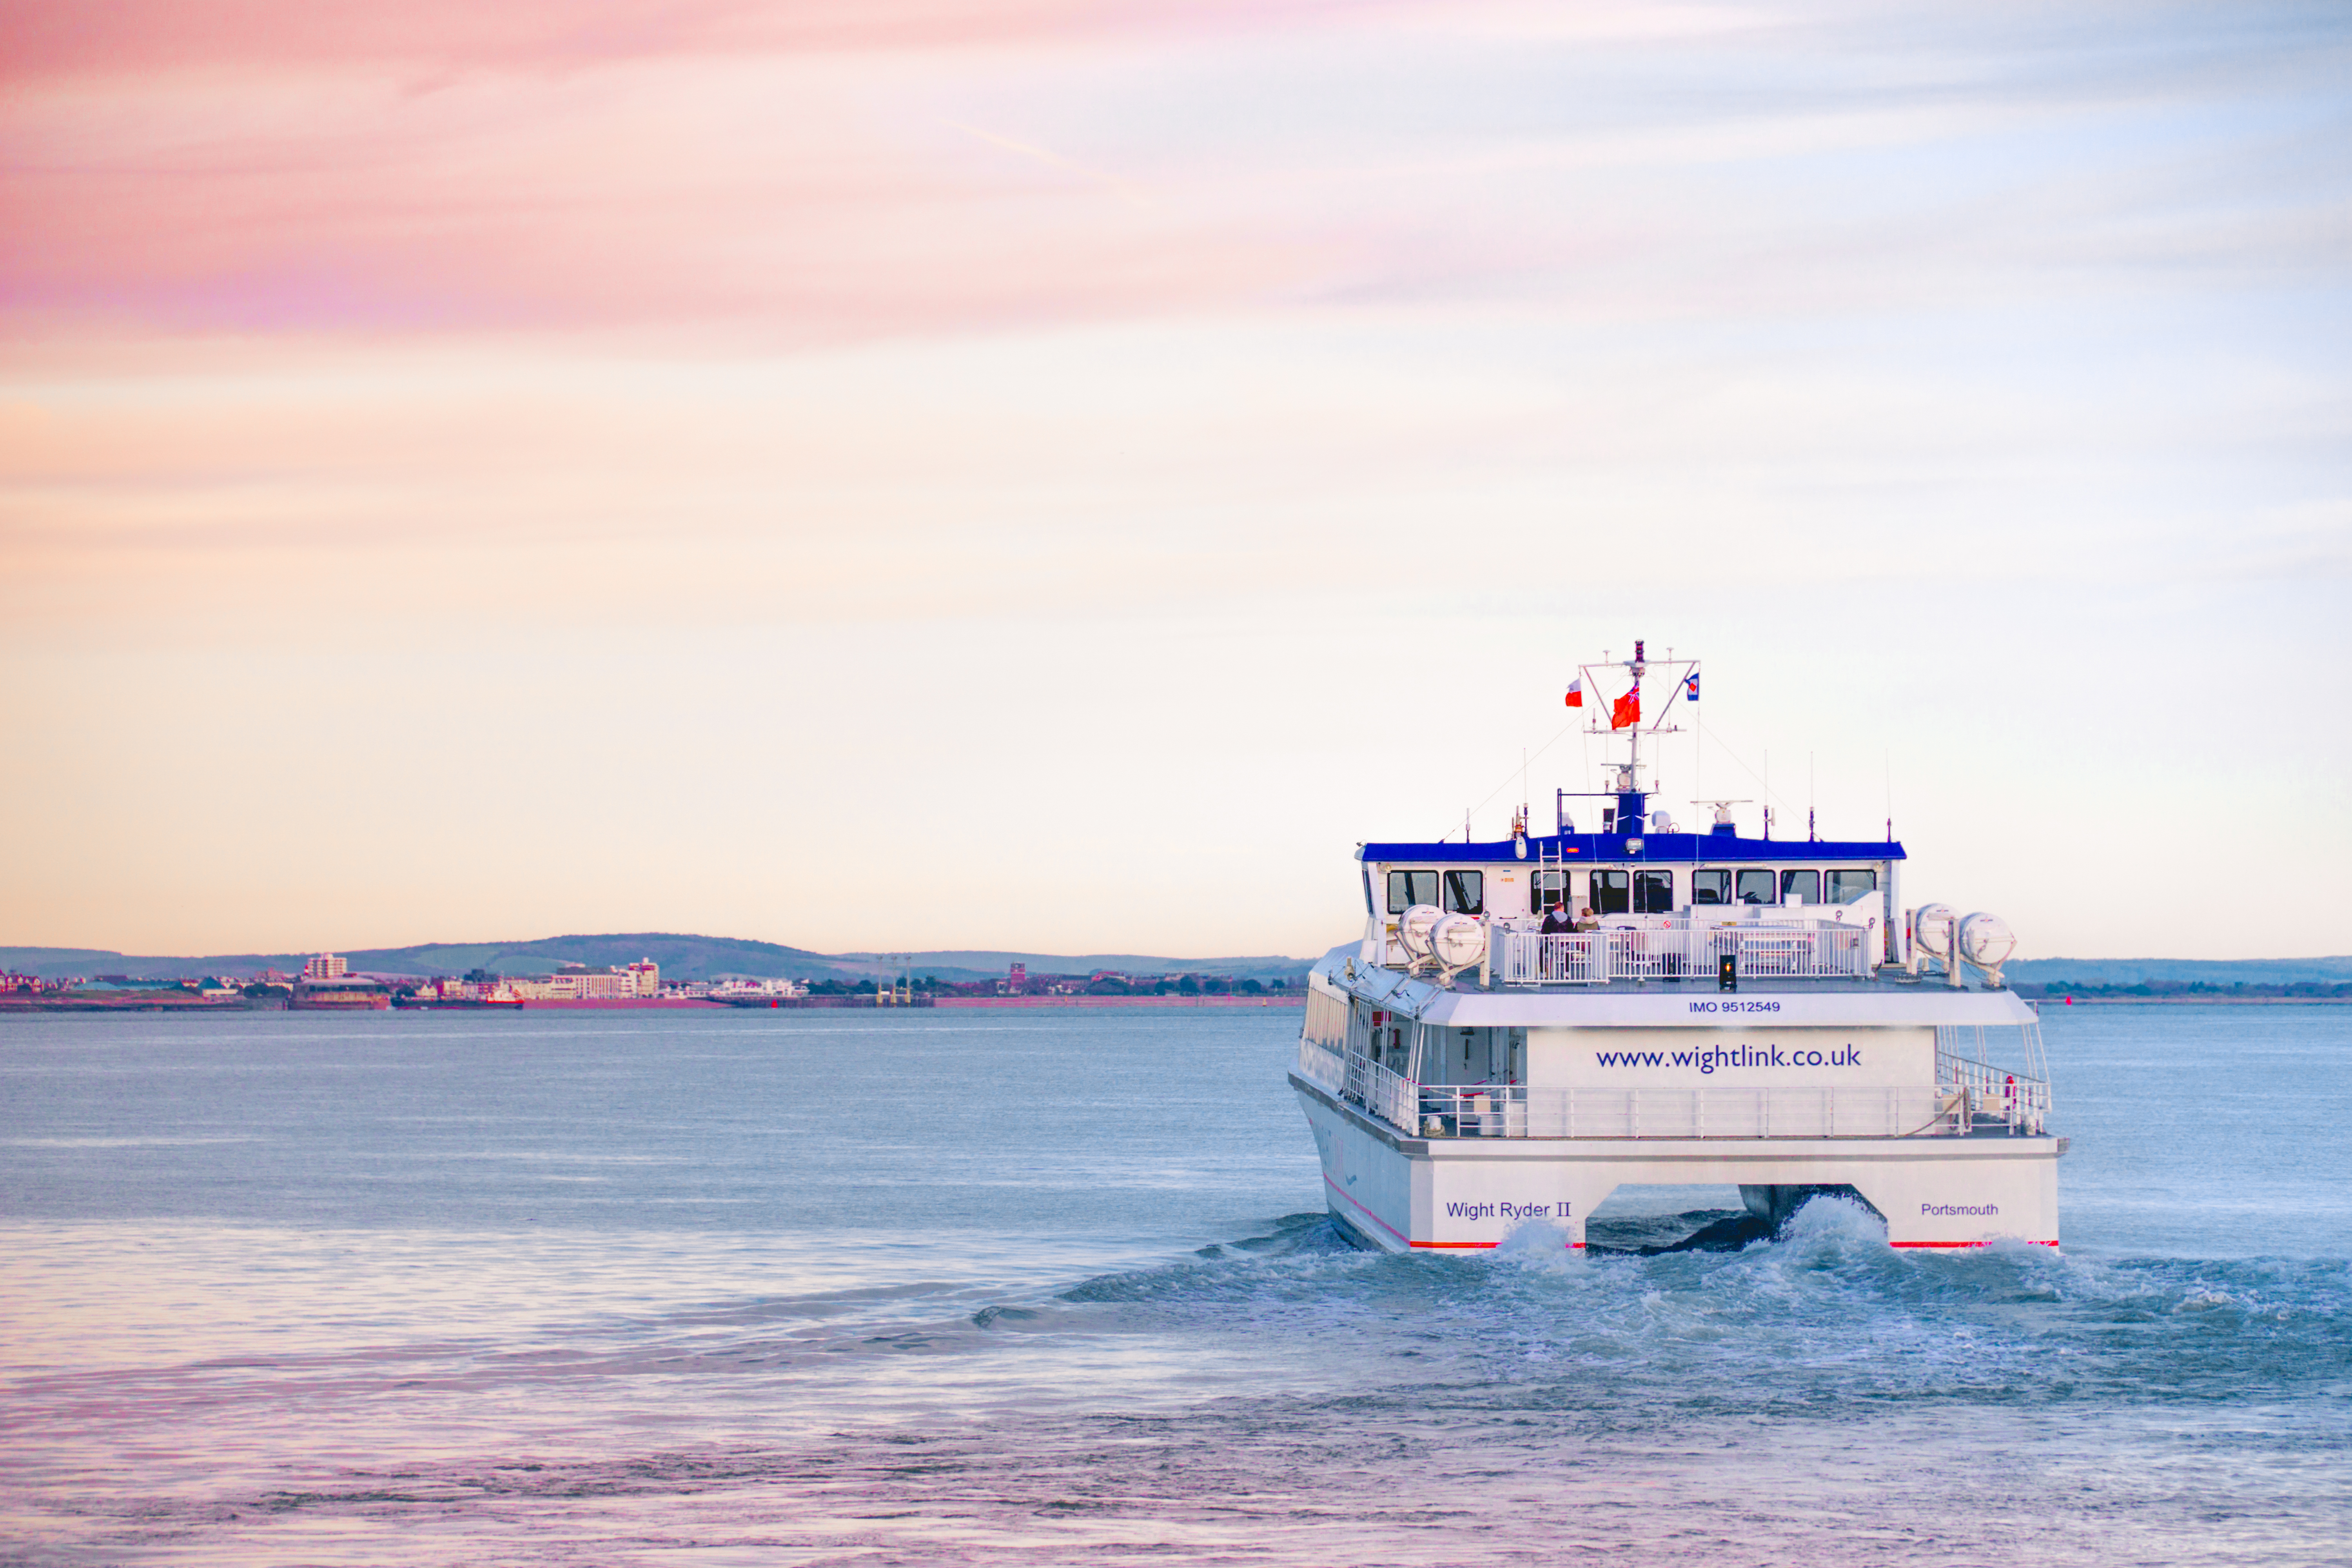 Travel to Pride in style with Wightlink – Travel offers from Portsmouth – the Island